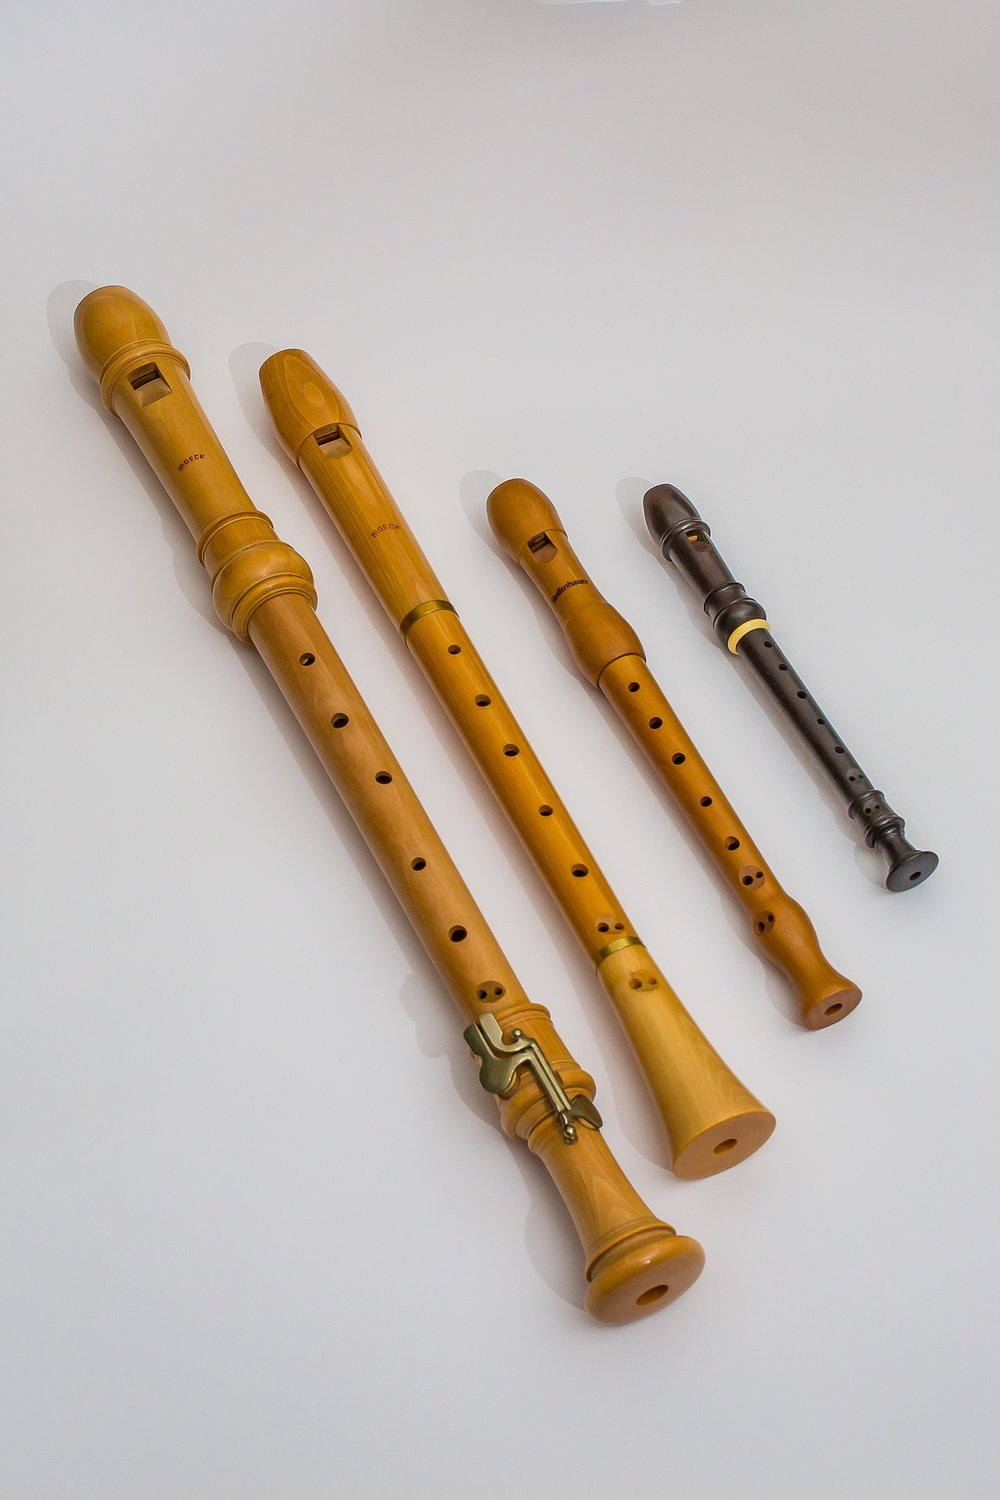 Different types of recorders, which each play a different pitch range, e.g. alto, soprano, tenor.